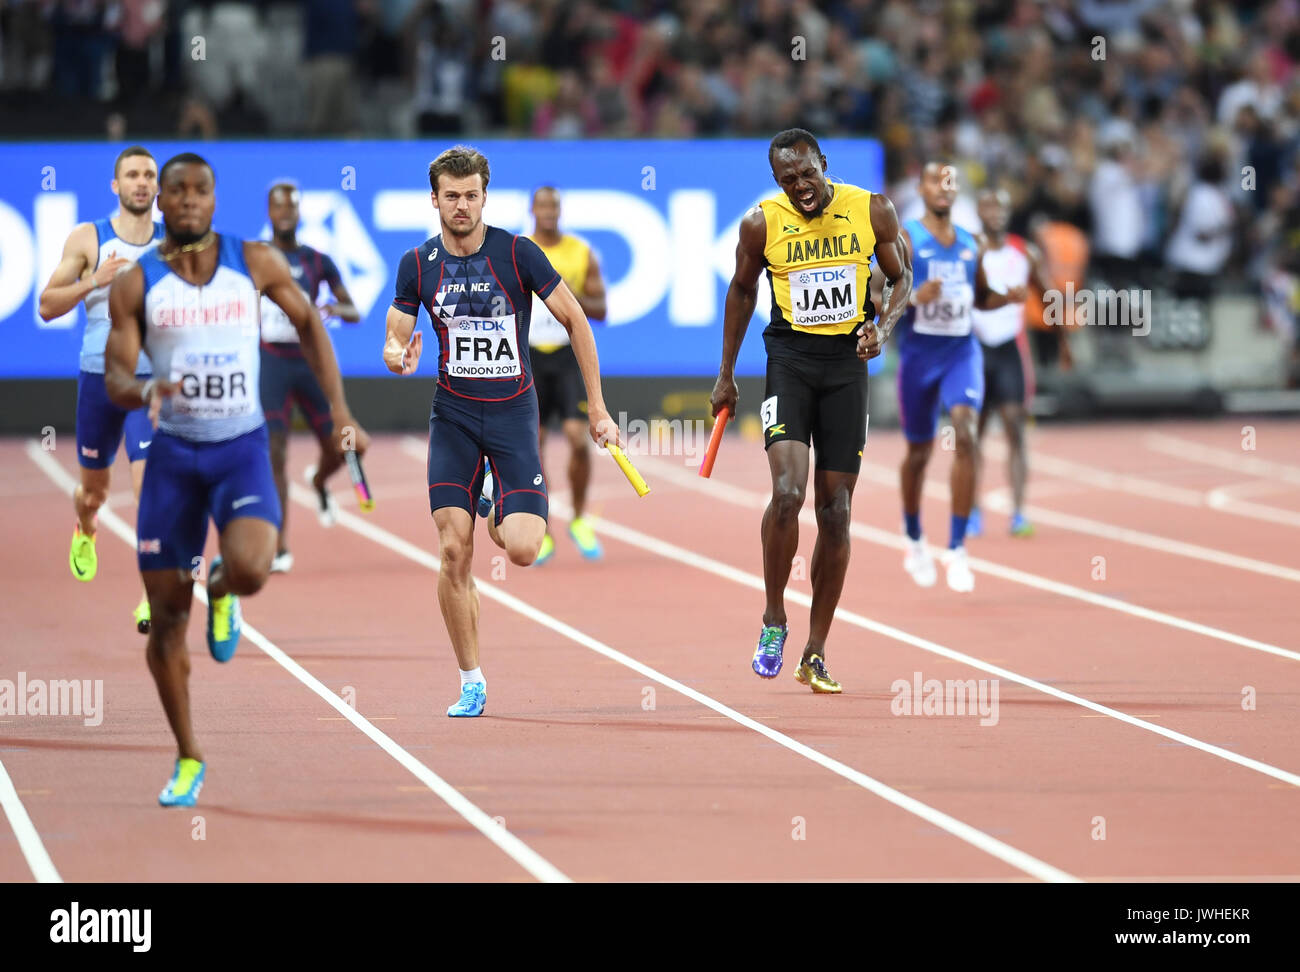 London, UK. 12th August, 2017. Usain Bolt pulled up injured in his final ever race, at the 4x100 relays at the IAAF Stock Photo